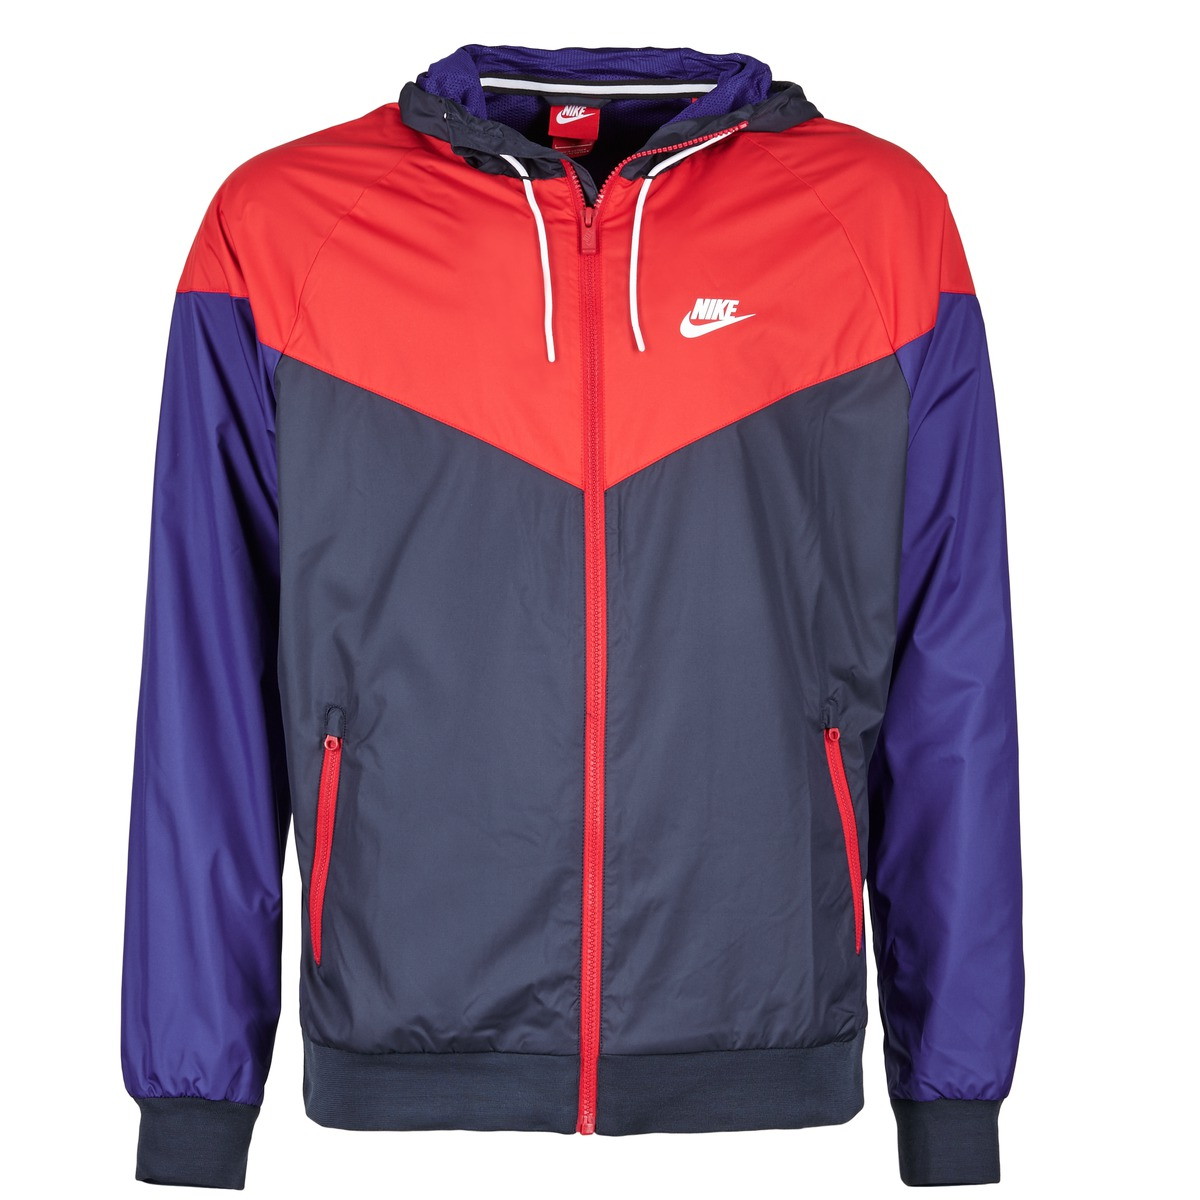 nike windrunner marine rouge bleu livraison gratuite avec v tements coupes. Black Bedroom Furniture Sets. Home Design Ideas